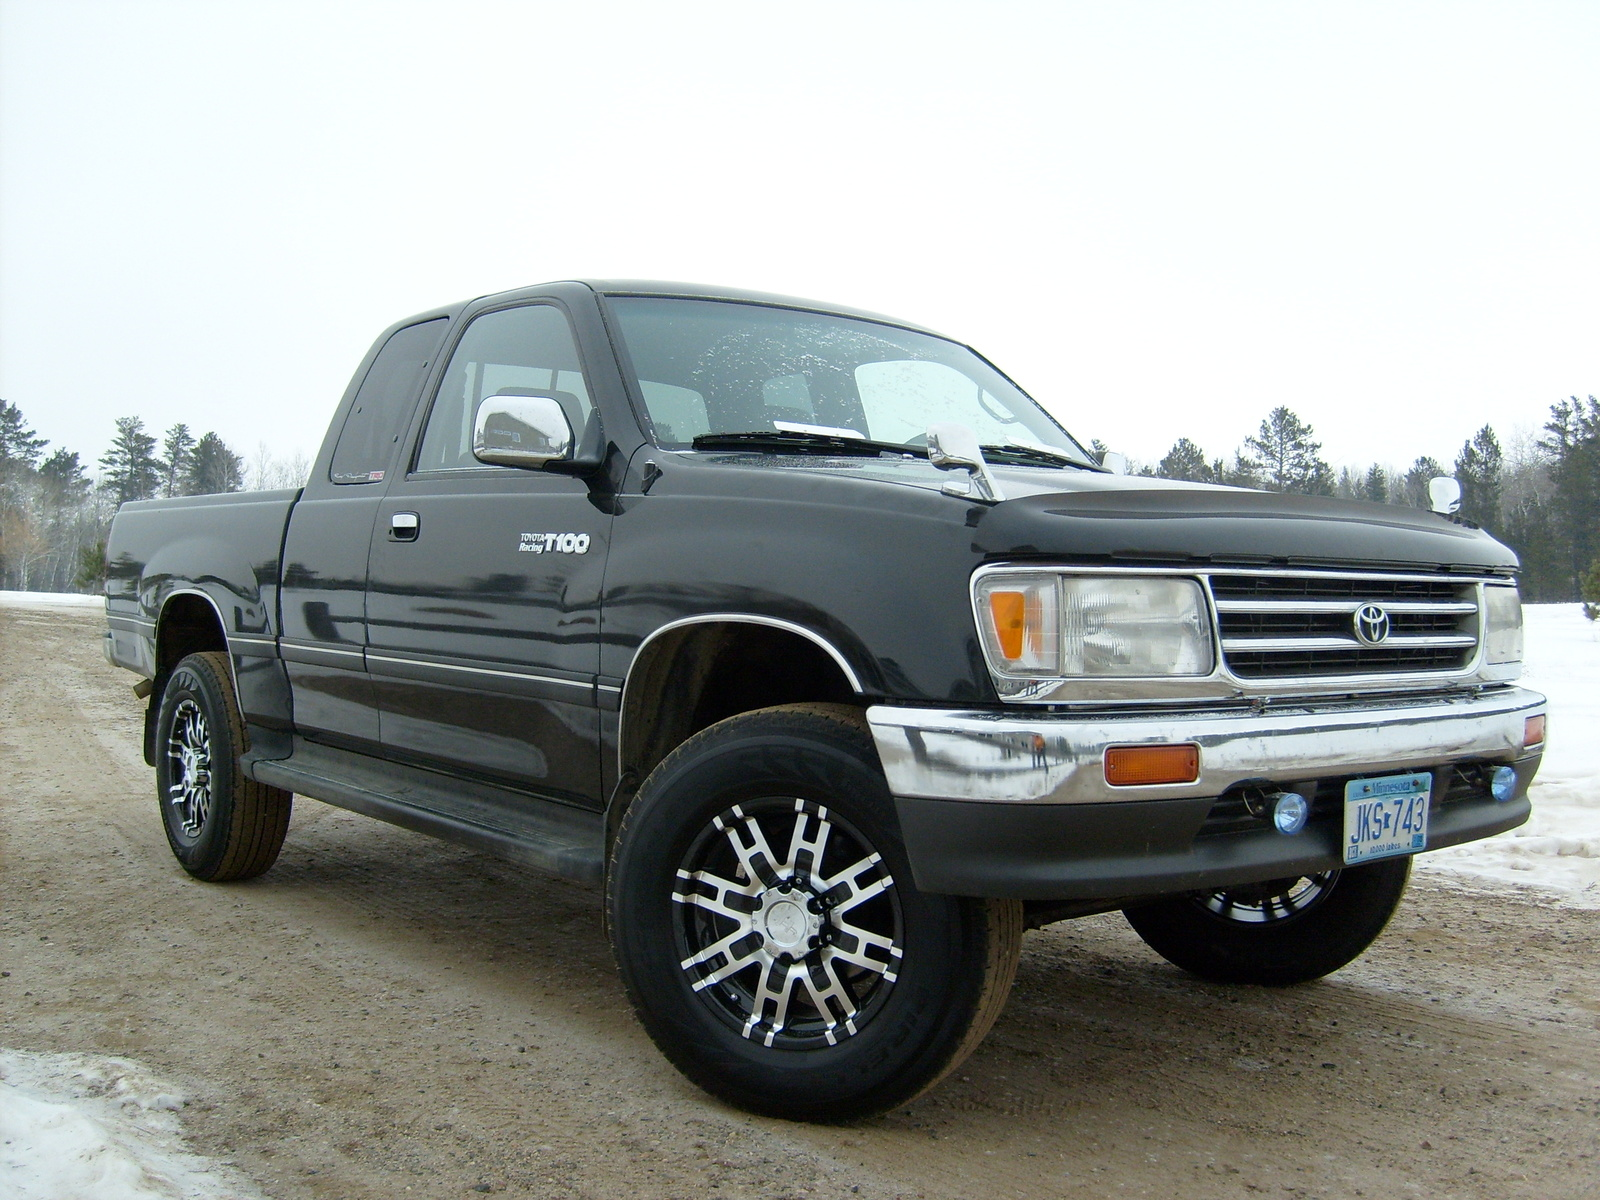 1998 toyota t100 information and photos zombiedrive. Black Bedroom Furniture Sets. Home Design Ideas